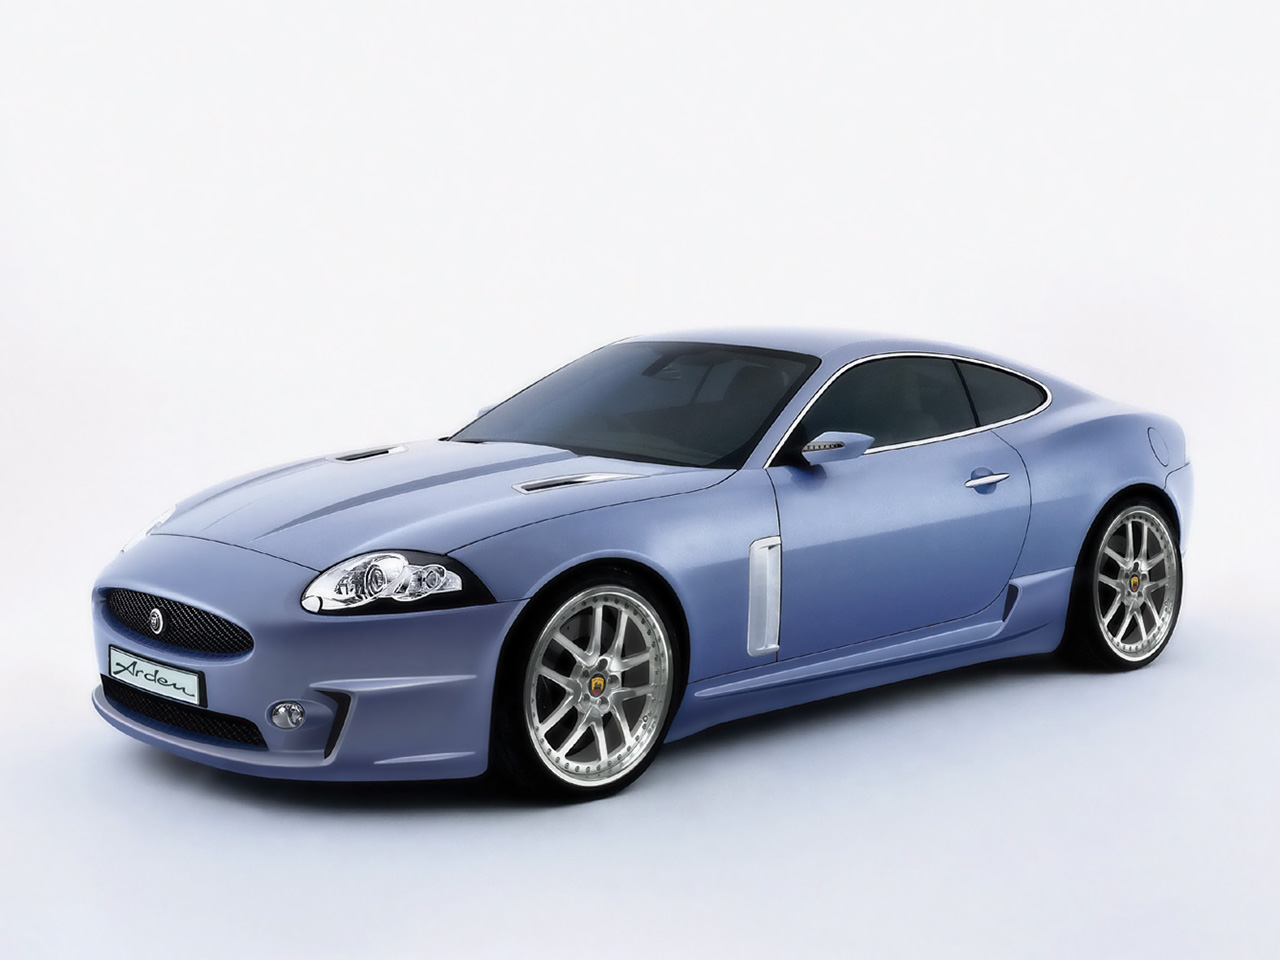 2008 Jaguar Xk-series #9